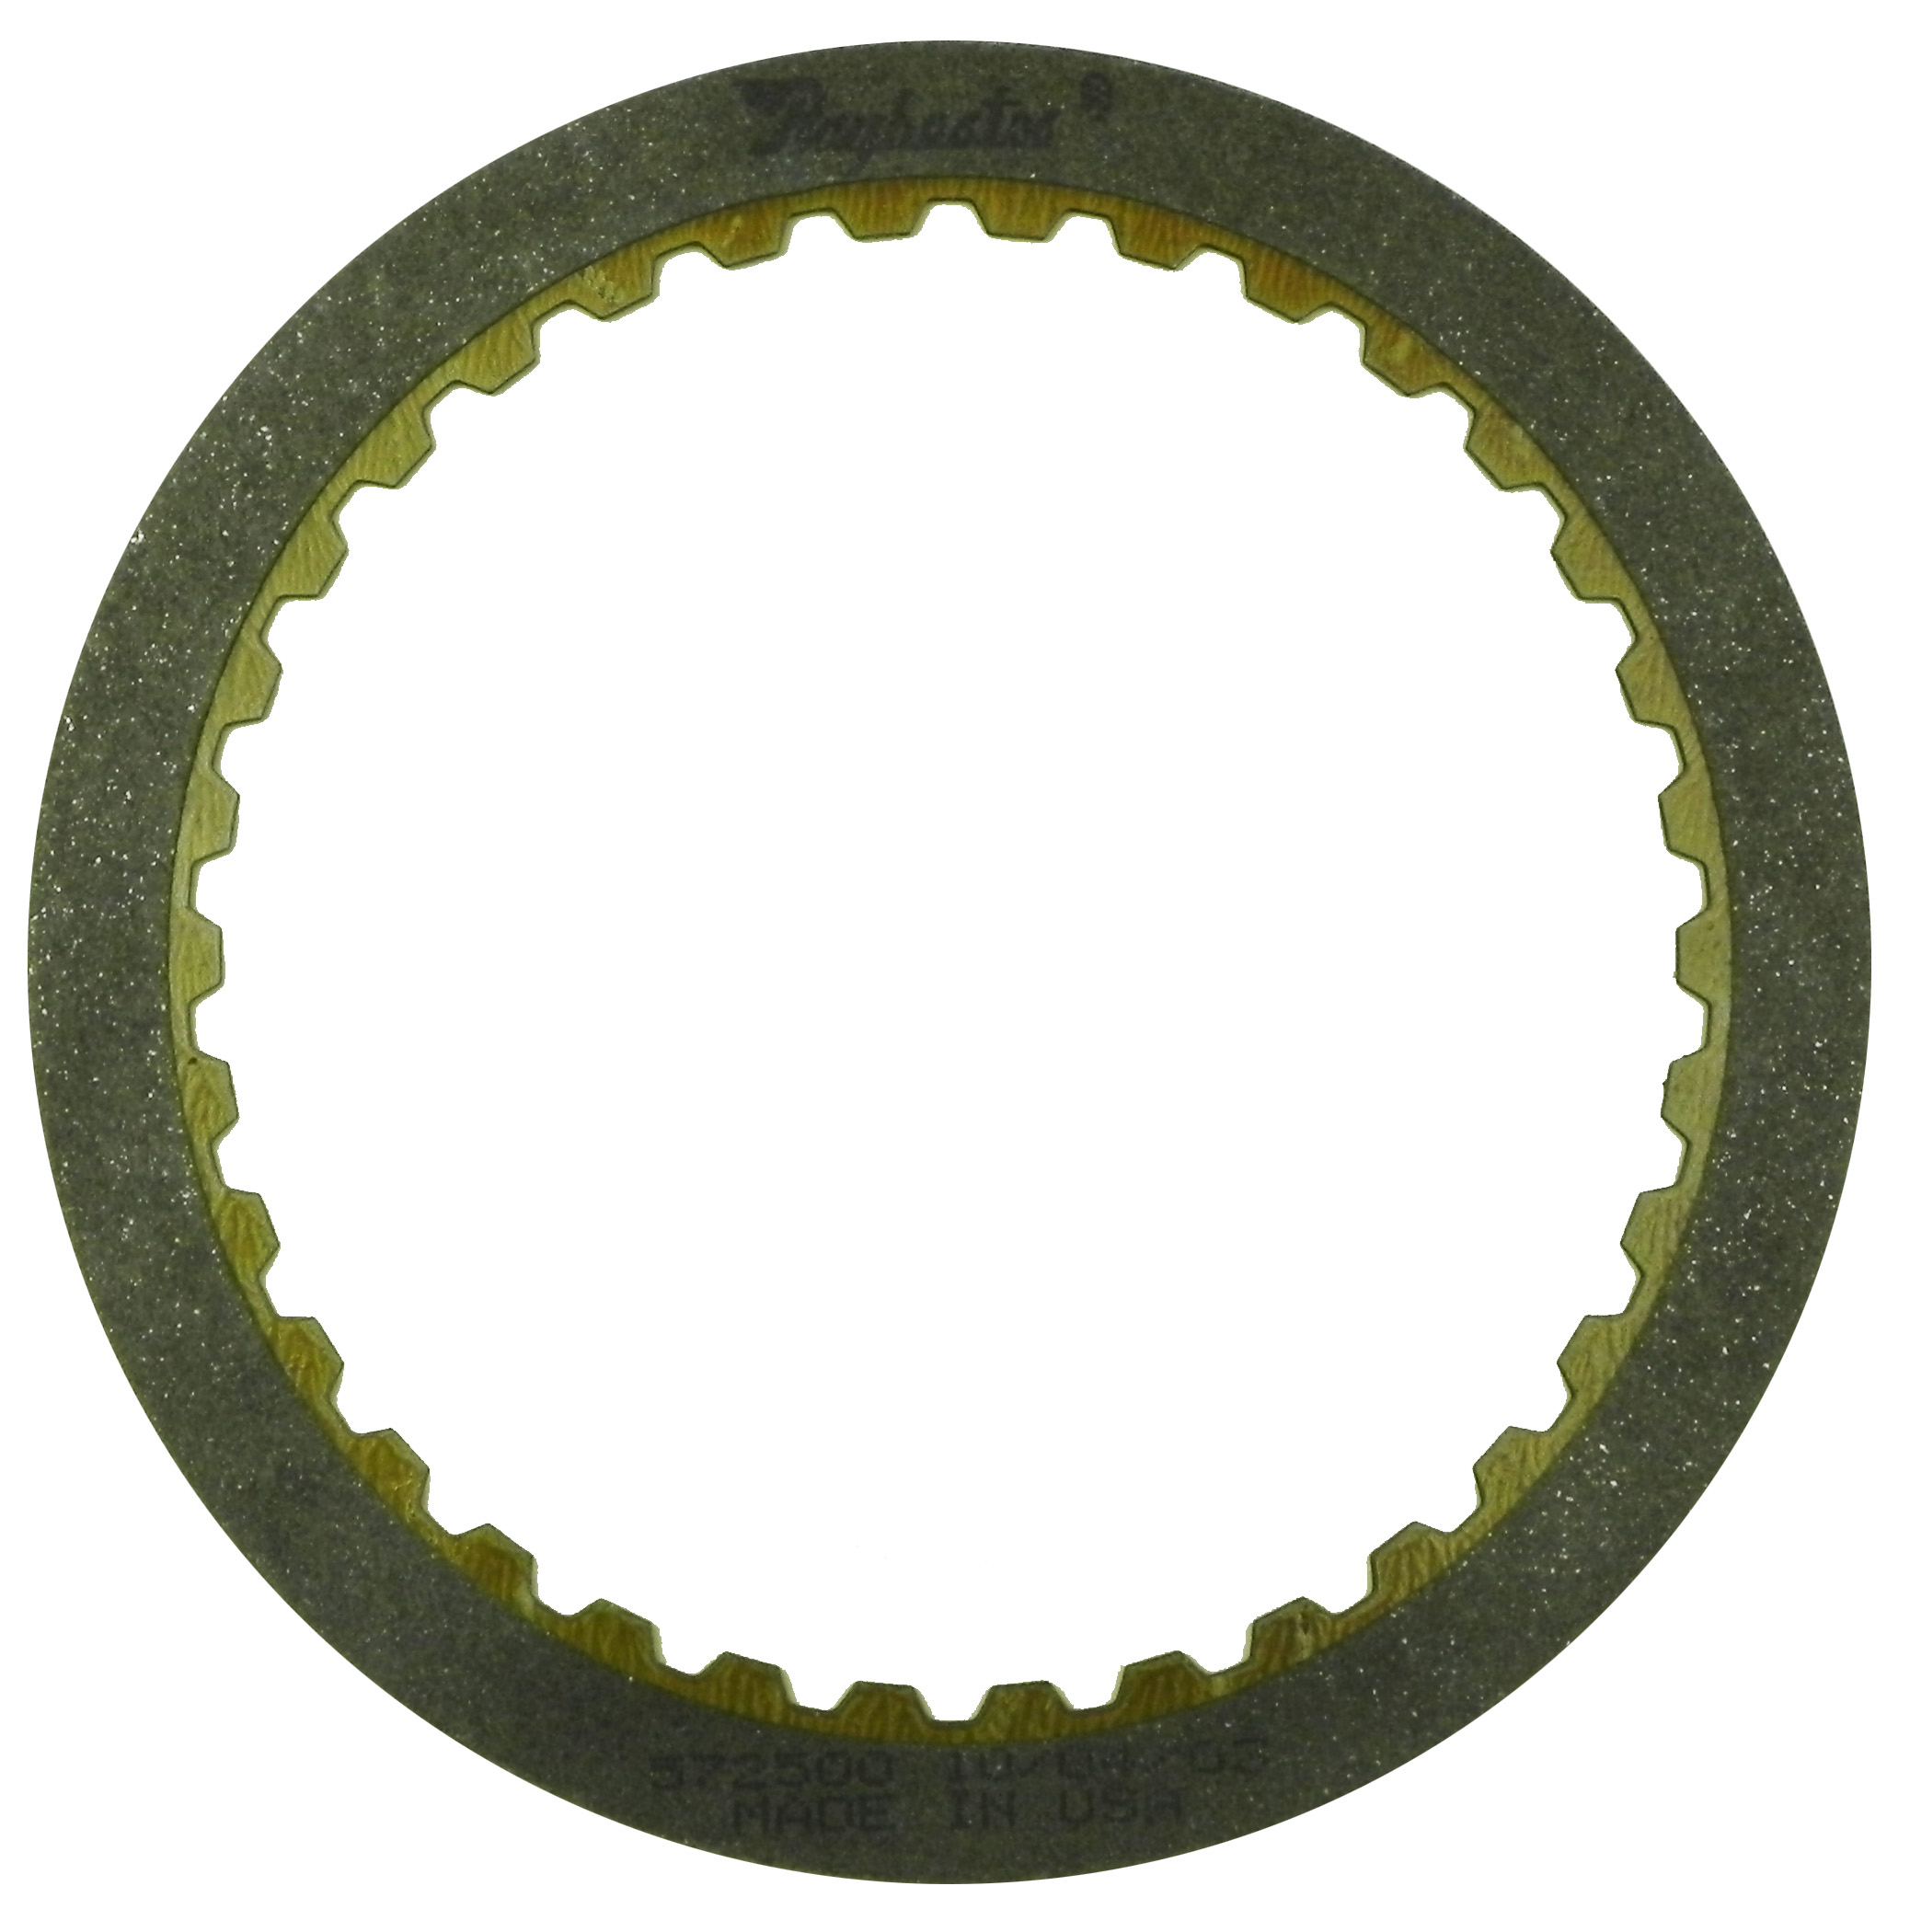 R572500 | 1999-2007 Friction Clutch Plate High Energy B1 Coast, C2 Direct (Flat) High Energy